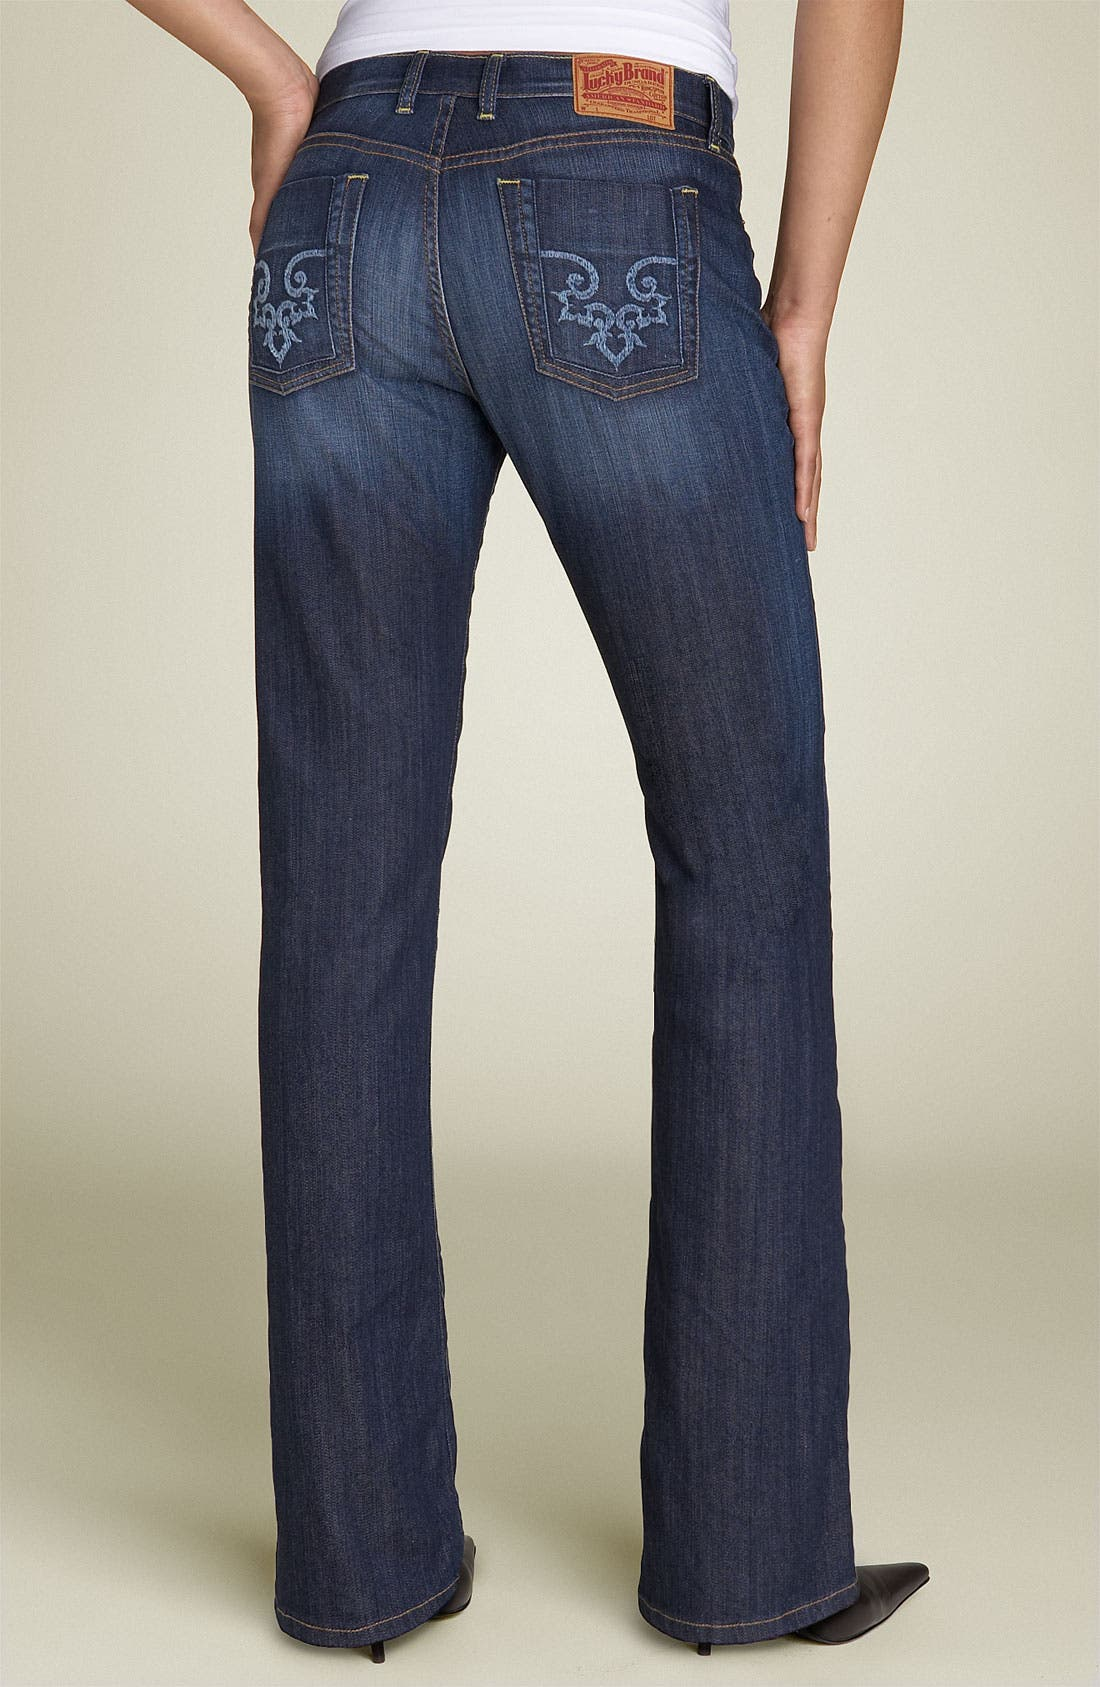 LUCKY BRAND 'Delaware Classic Rider' Stretch Jeans, Main, color, 460